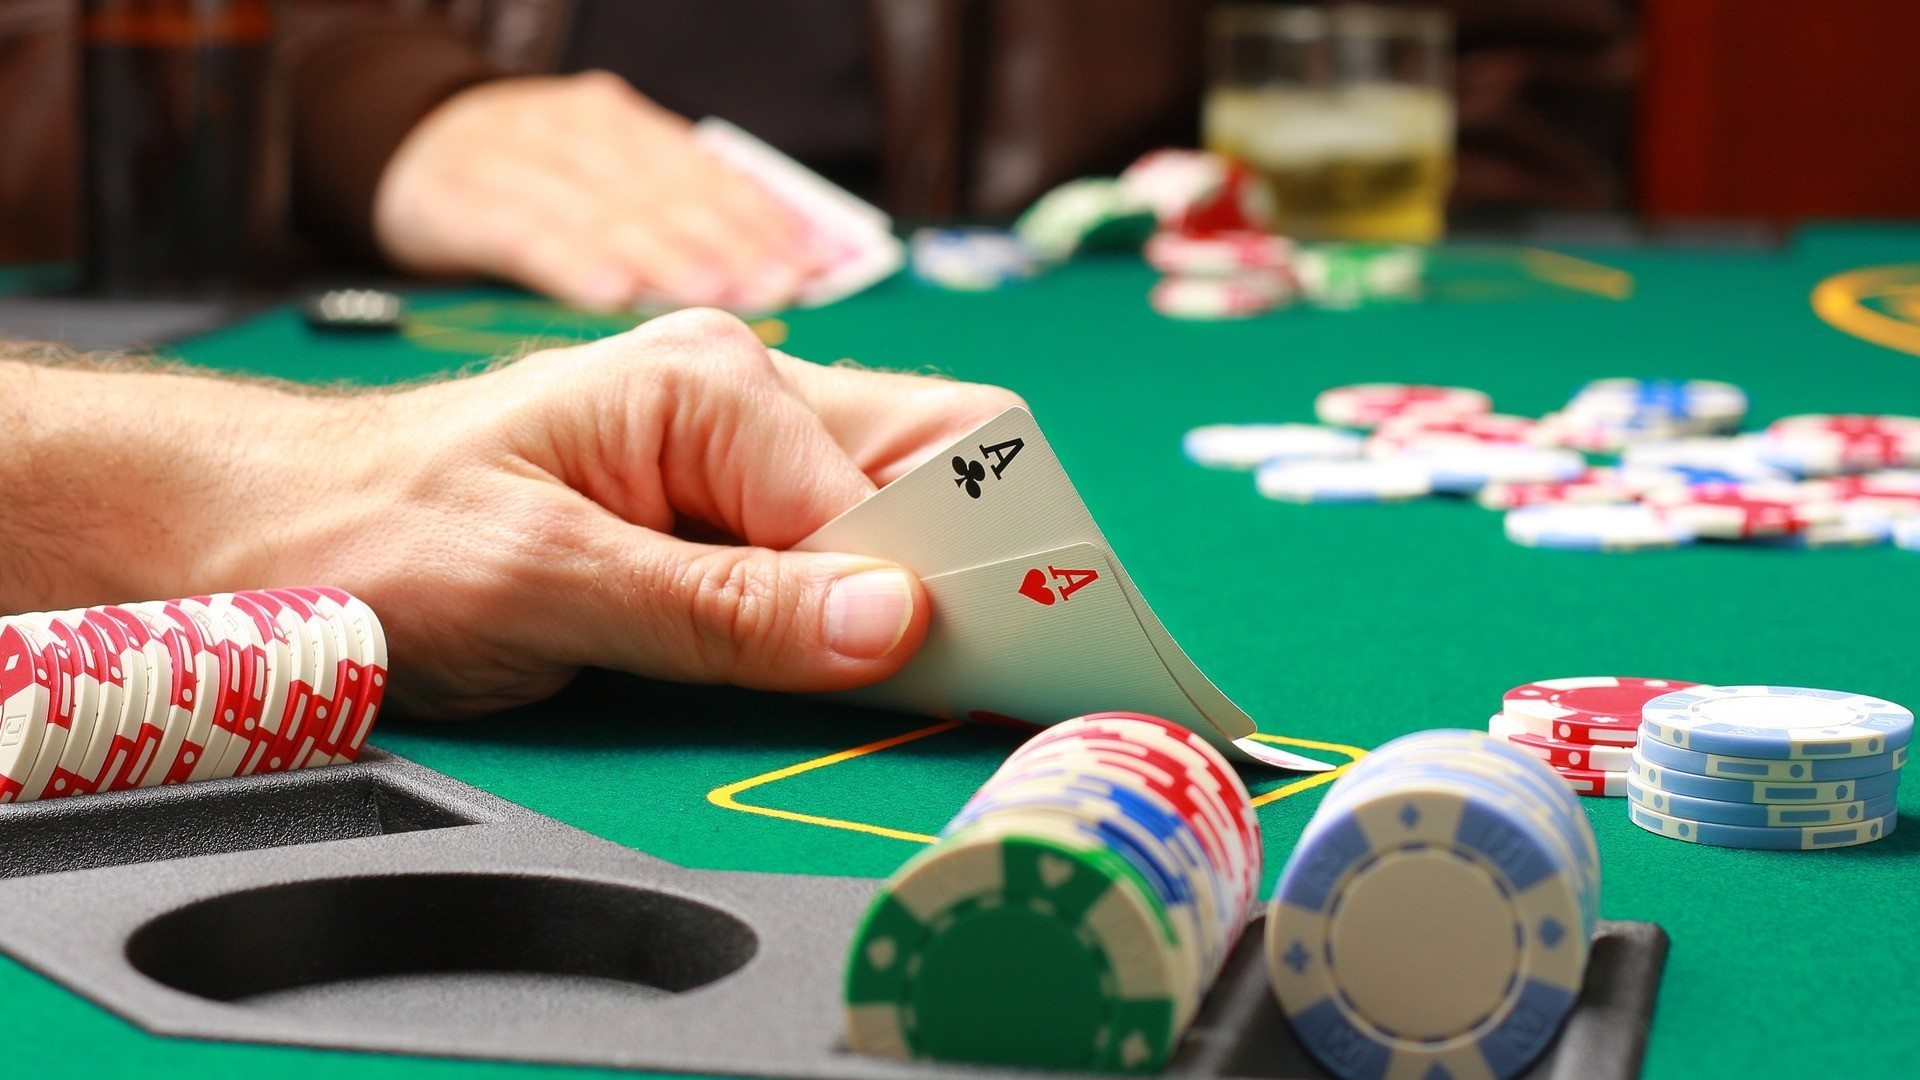 Tips On How To Acquire Benefits From Online Casinos No Deposit Bonuses - Gambling